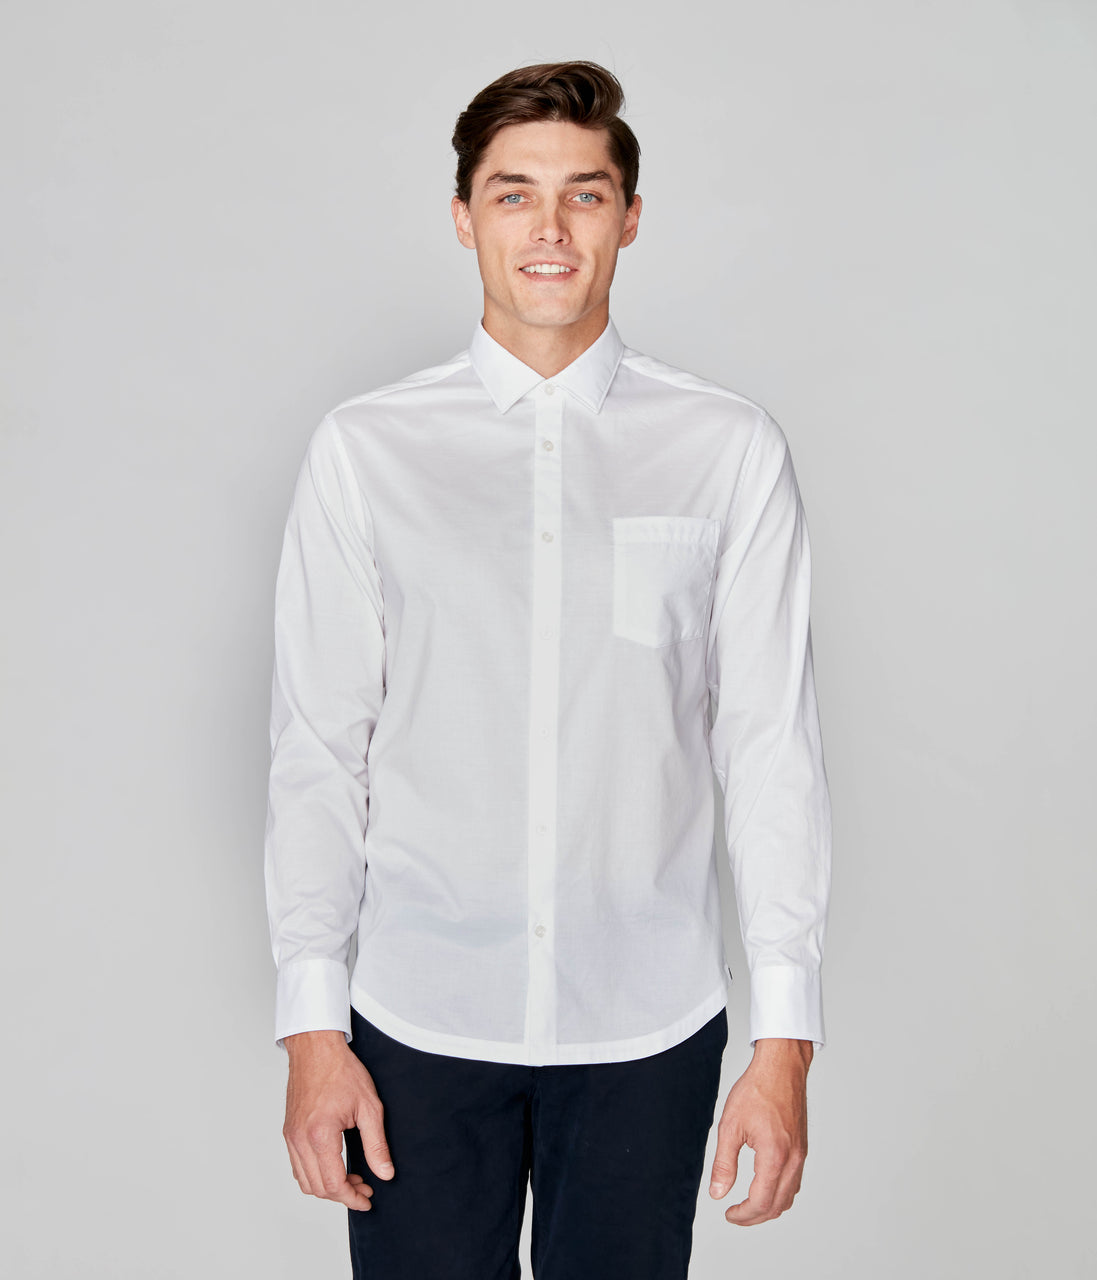 On-Point Solid Shirt - White - Good Man Brand - On-Point Solid Shirt - White